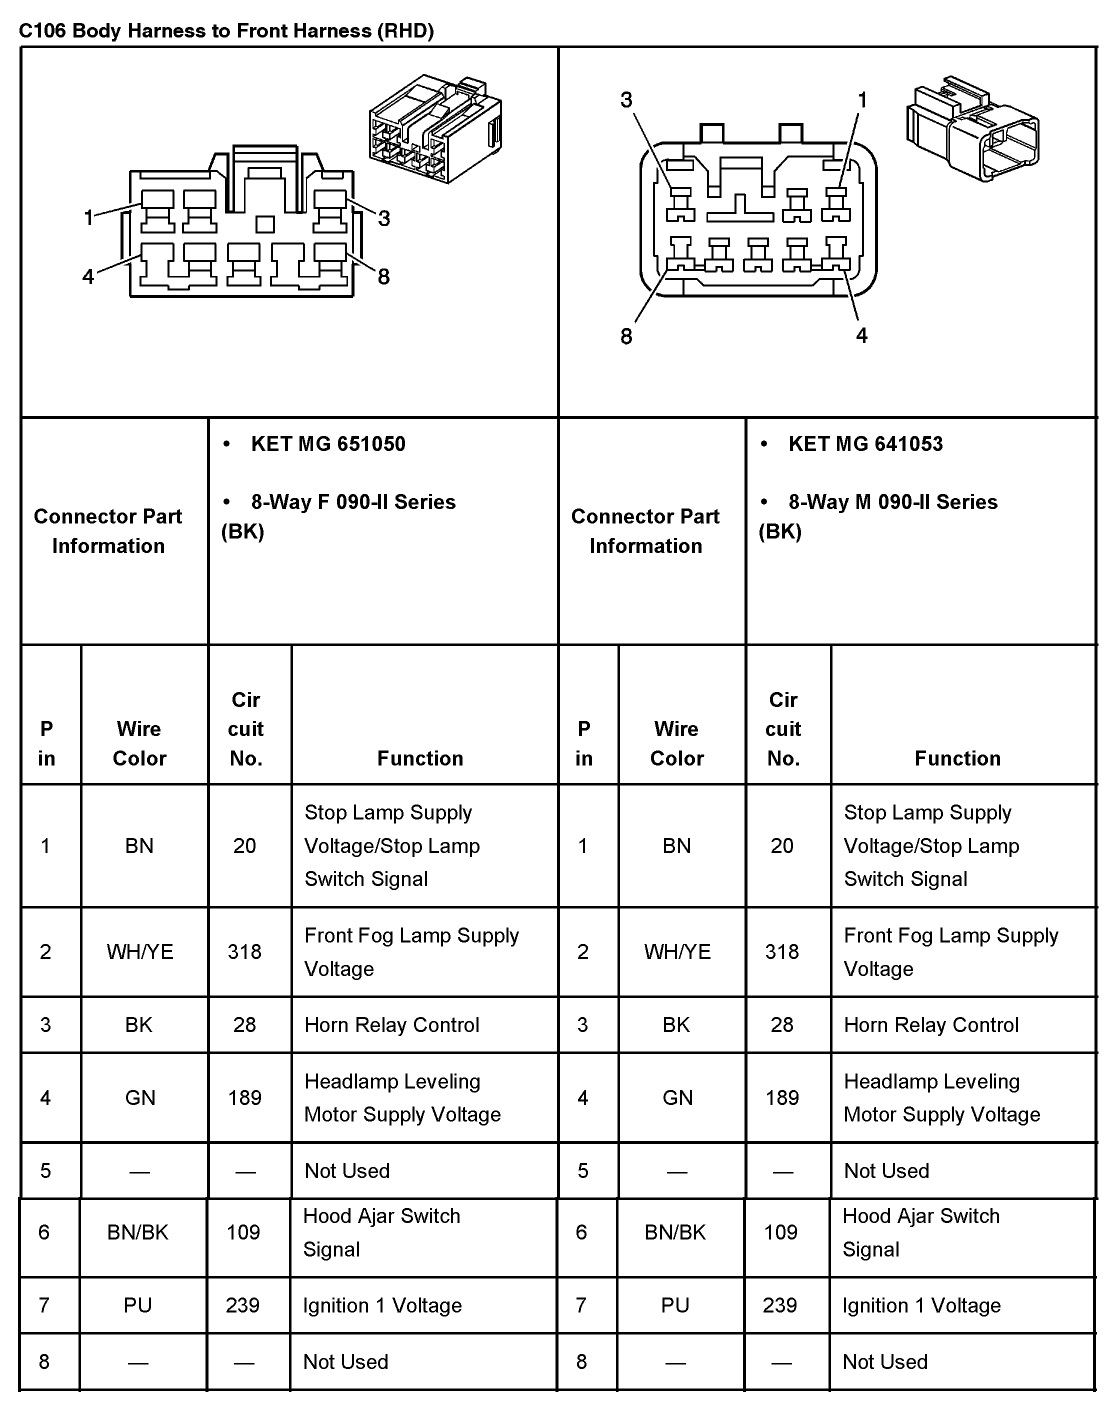 Fuse Box On Chevy Cobalt Auto Electrical Wiring Diagram 2011 Tahoe Dome Light Schematic Cavalier Harness 2005 Aveo Master Connector List And Diagrams